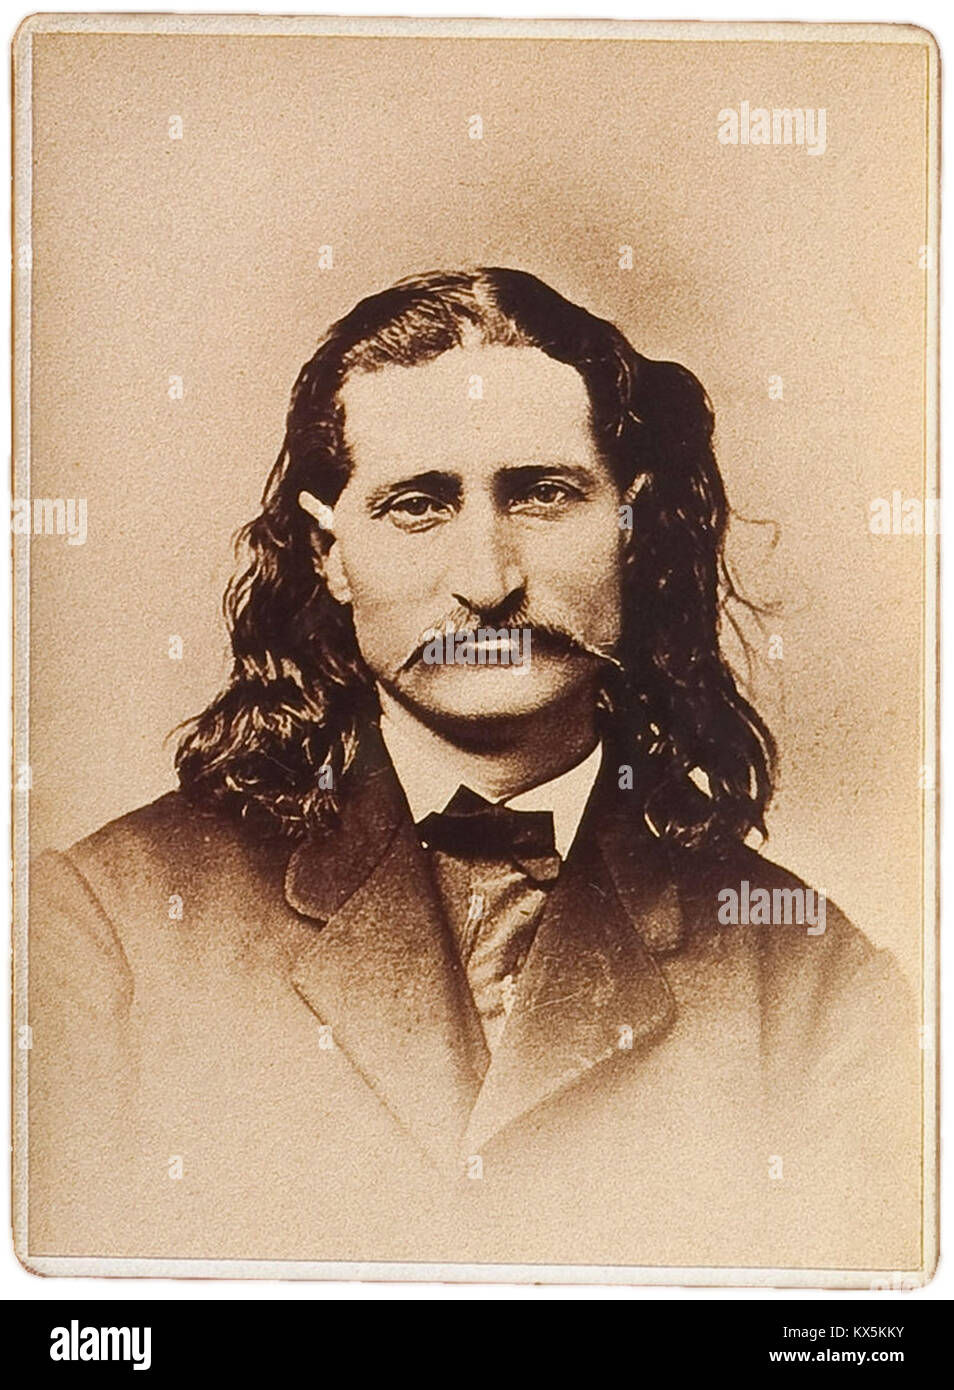 "James Butler Hickok, ""Wild Bill"" Hickok, James Hickok fue un héroe popular del Viejo Oeste Americano Imagen De Stock"